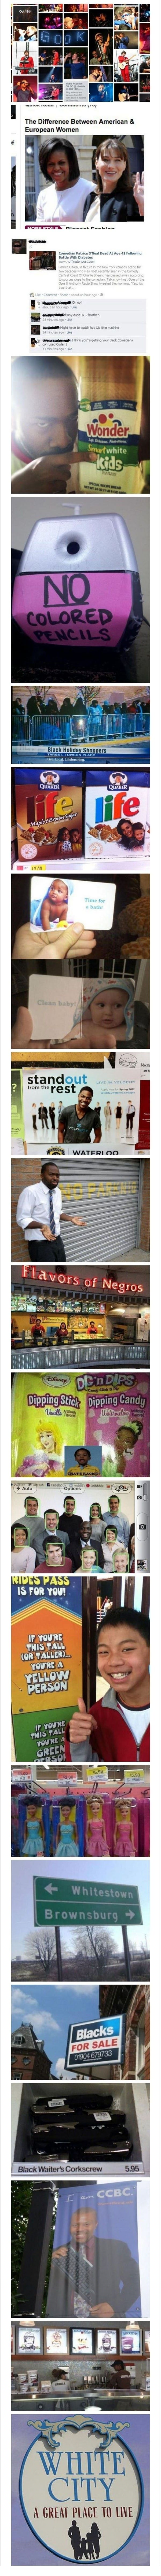 Accidental Racism  - funny pictures #funnypictures